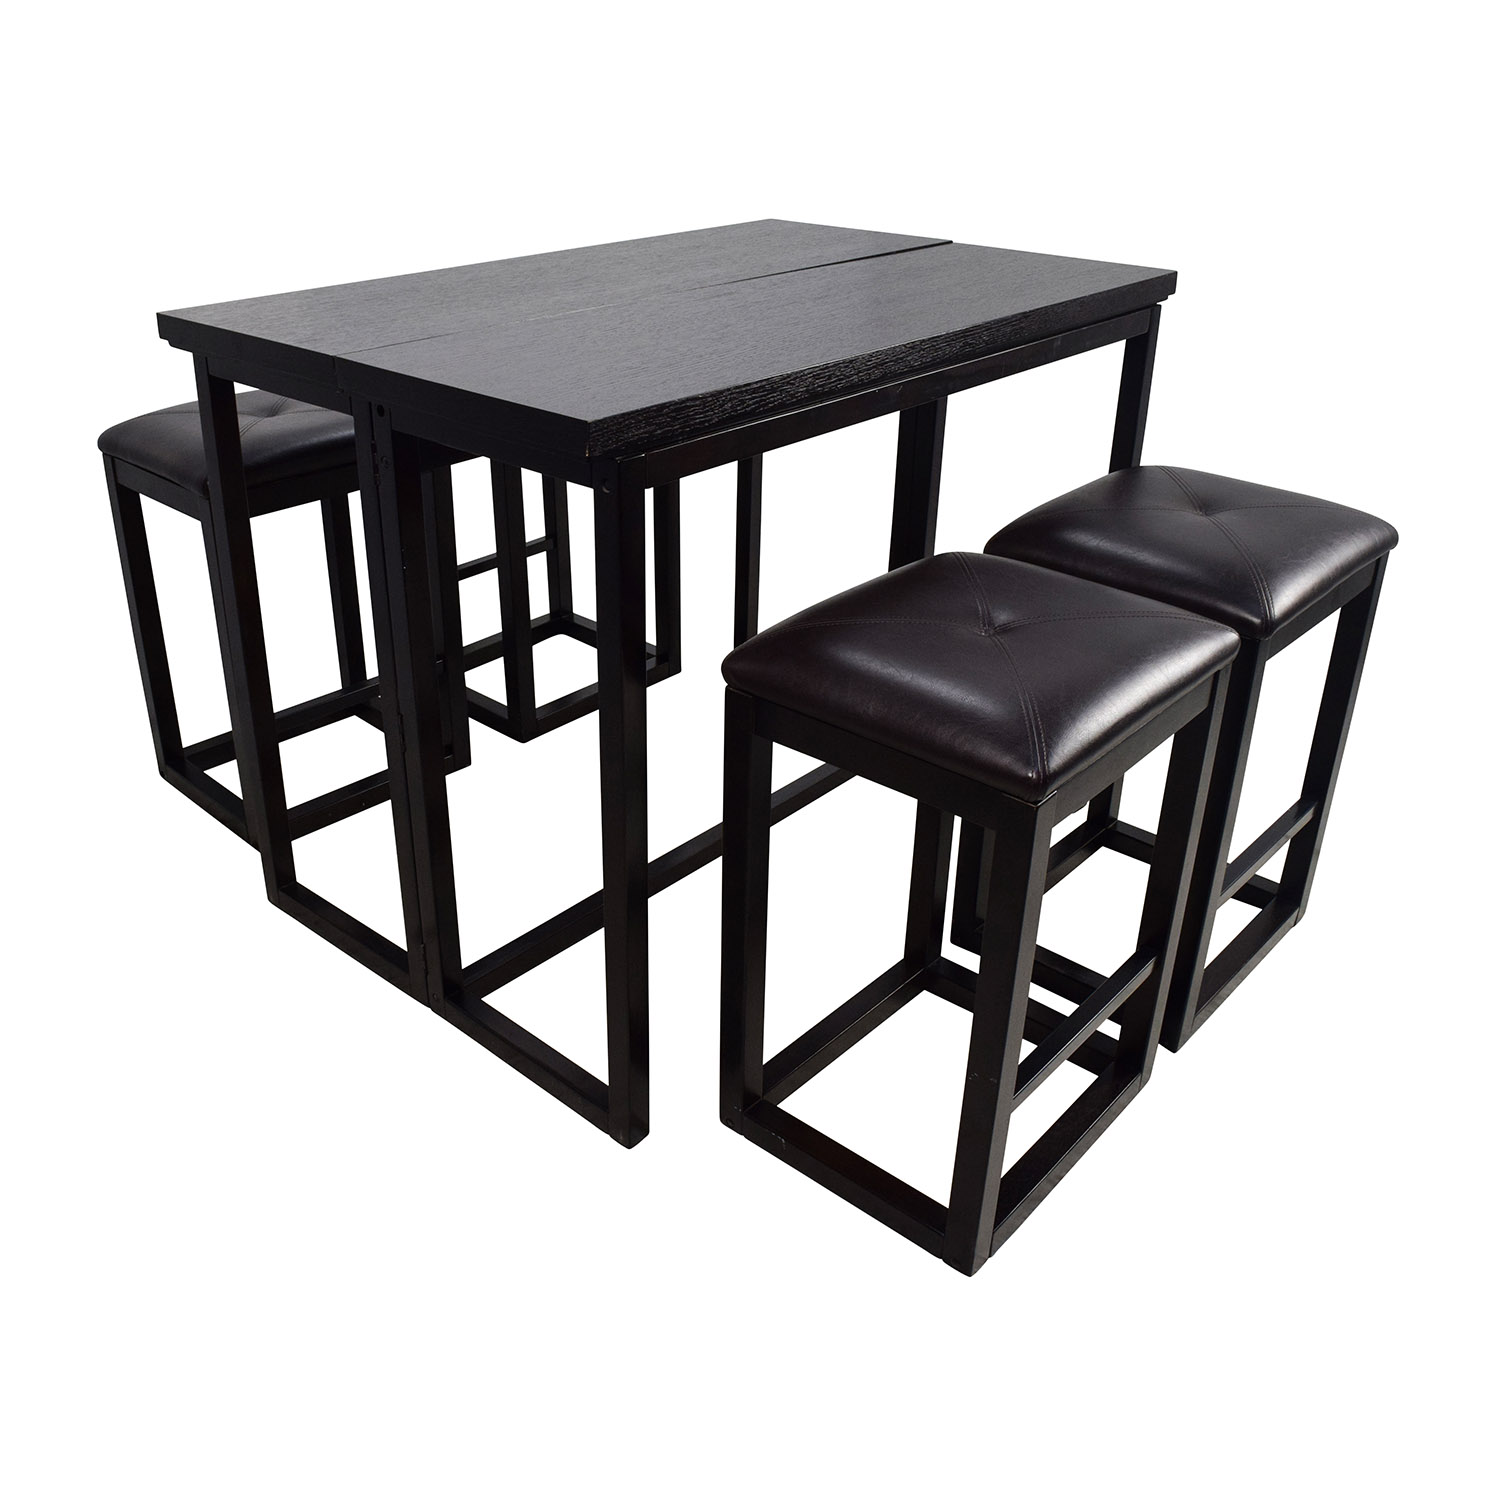 45 off counter height extendable dining table with stools tables. Black Bedroom Furniture Sets. Home Design Ideas